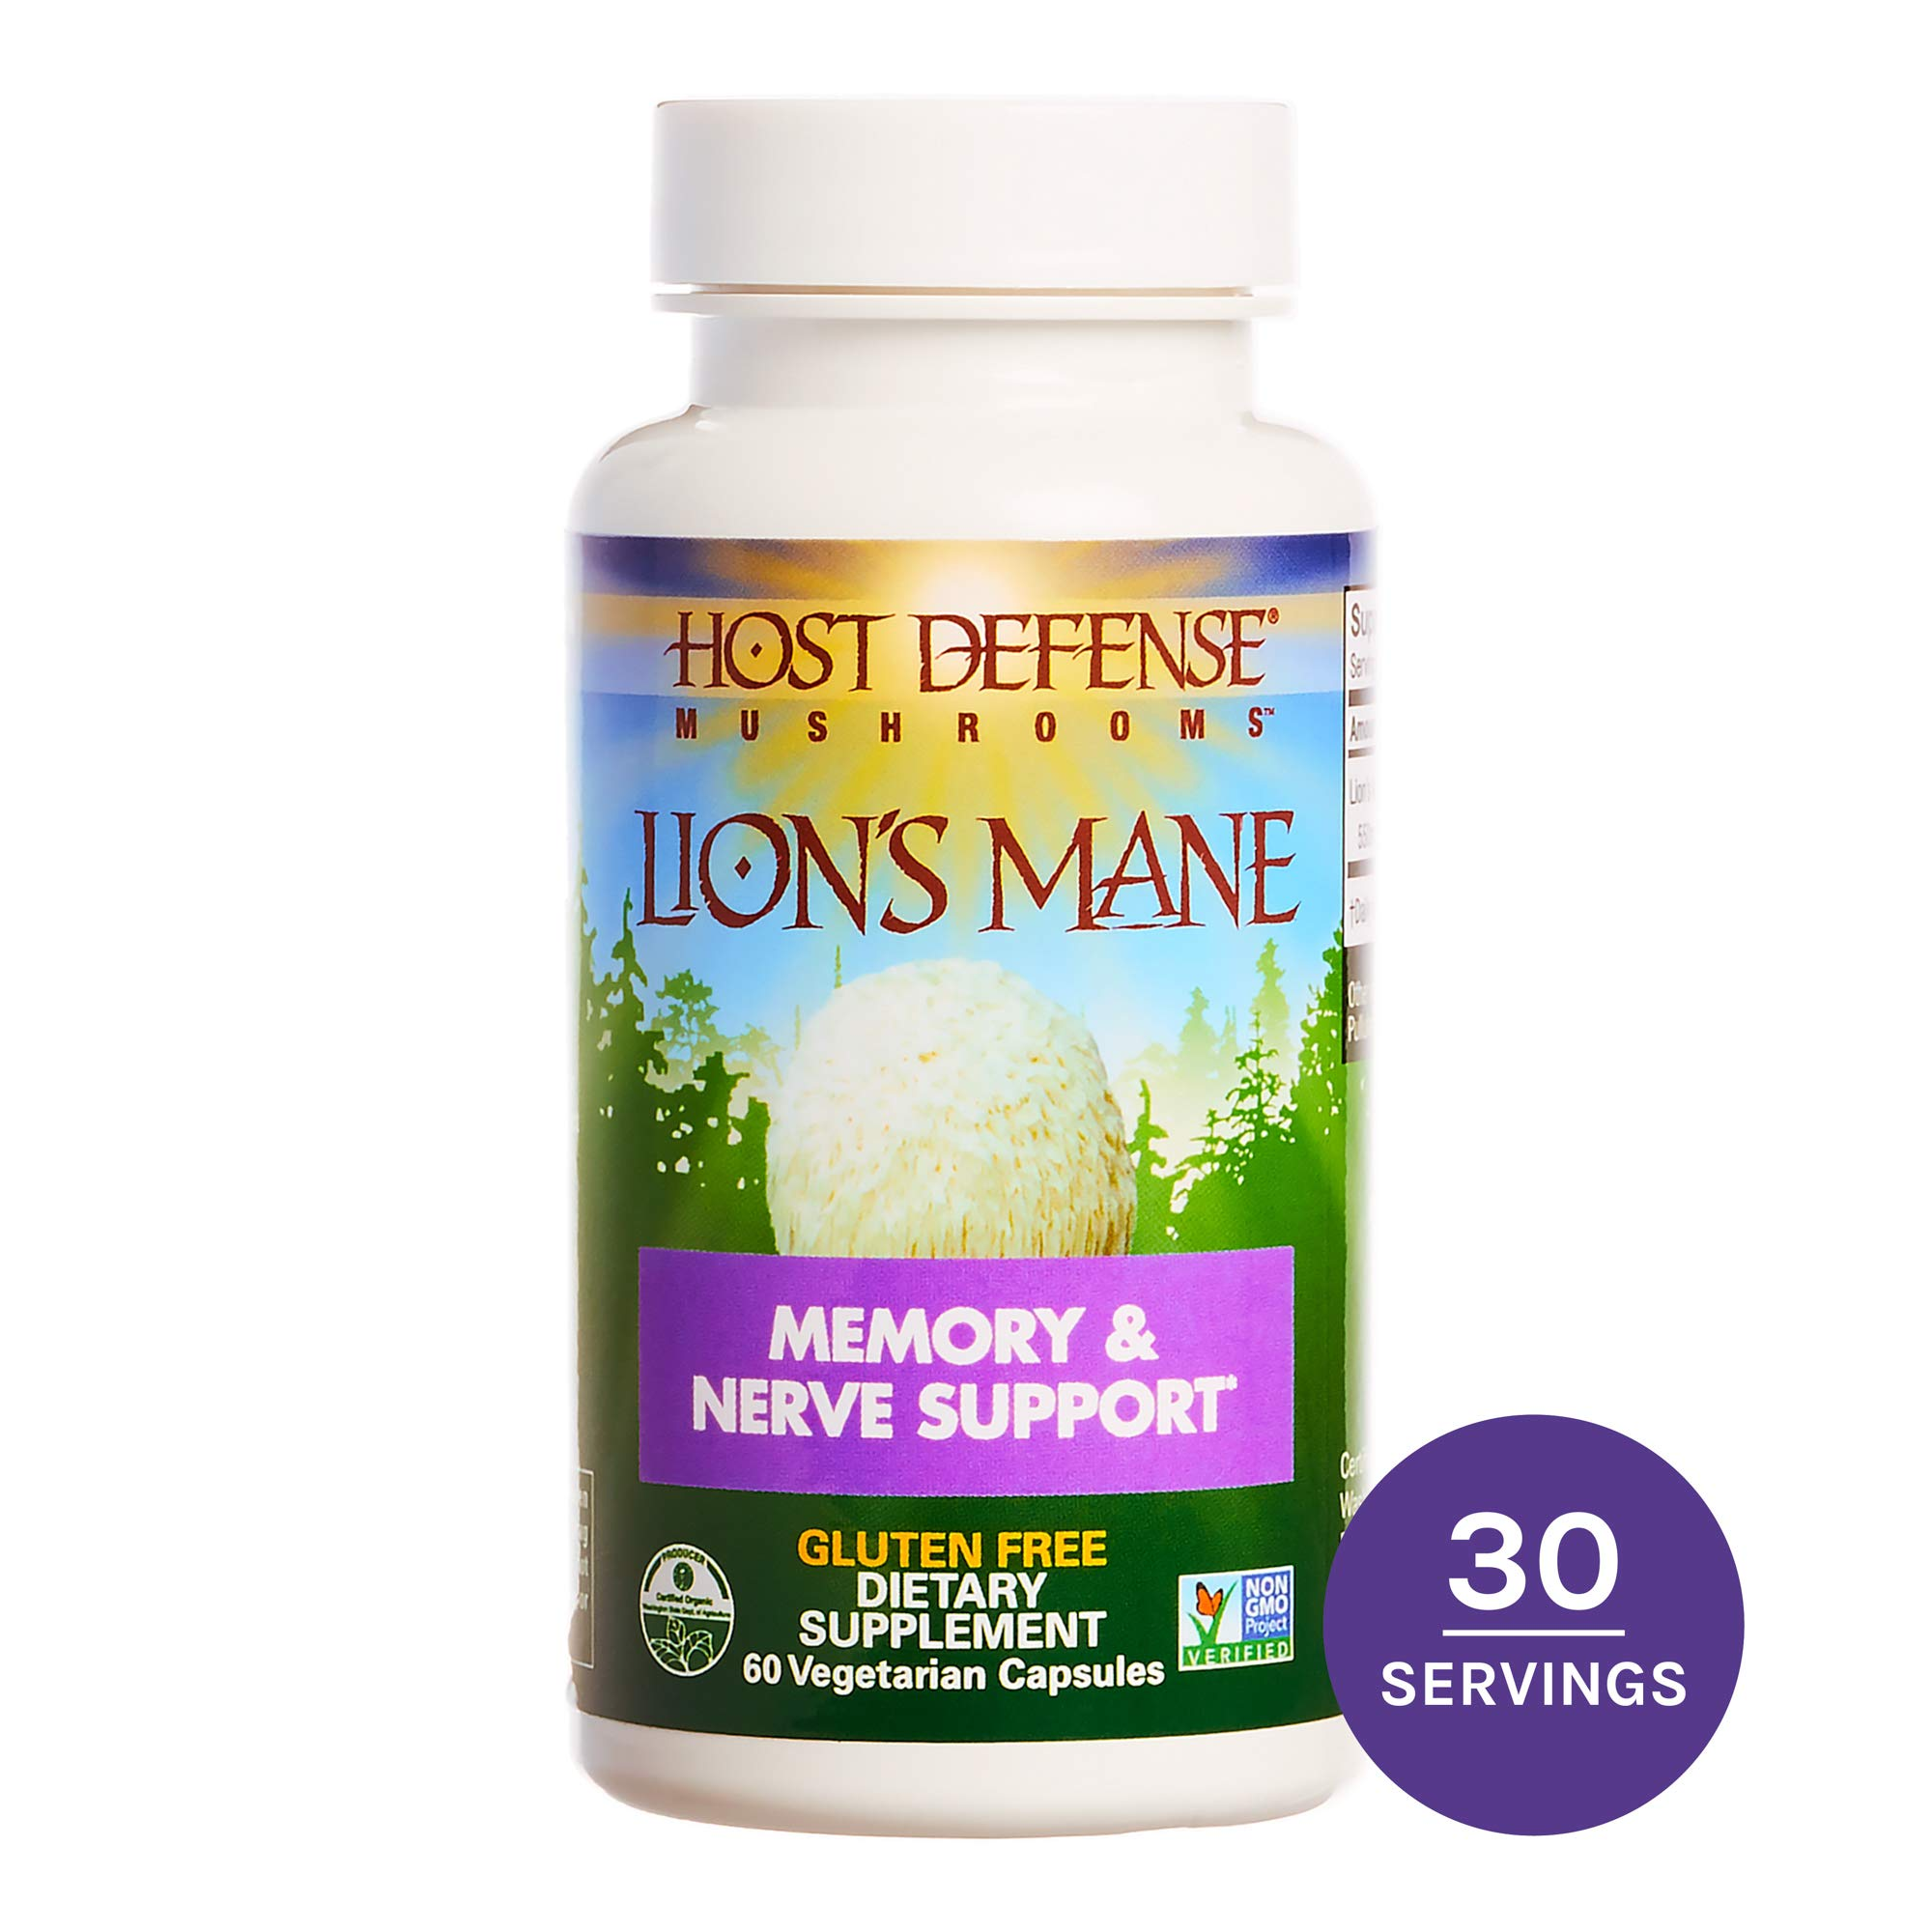 Host Defense - Lion's Mane Mushroom Capsules, Natural Support for Mental Clarity, Focus, Memory, Cerebral and Nervous System Health, Non-GMO, Vegan, Organic, 60 Count by Host Defense